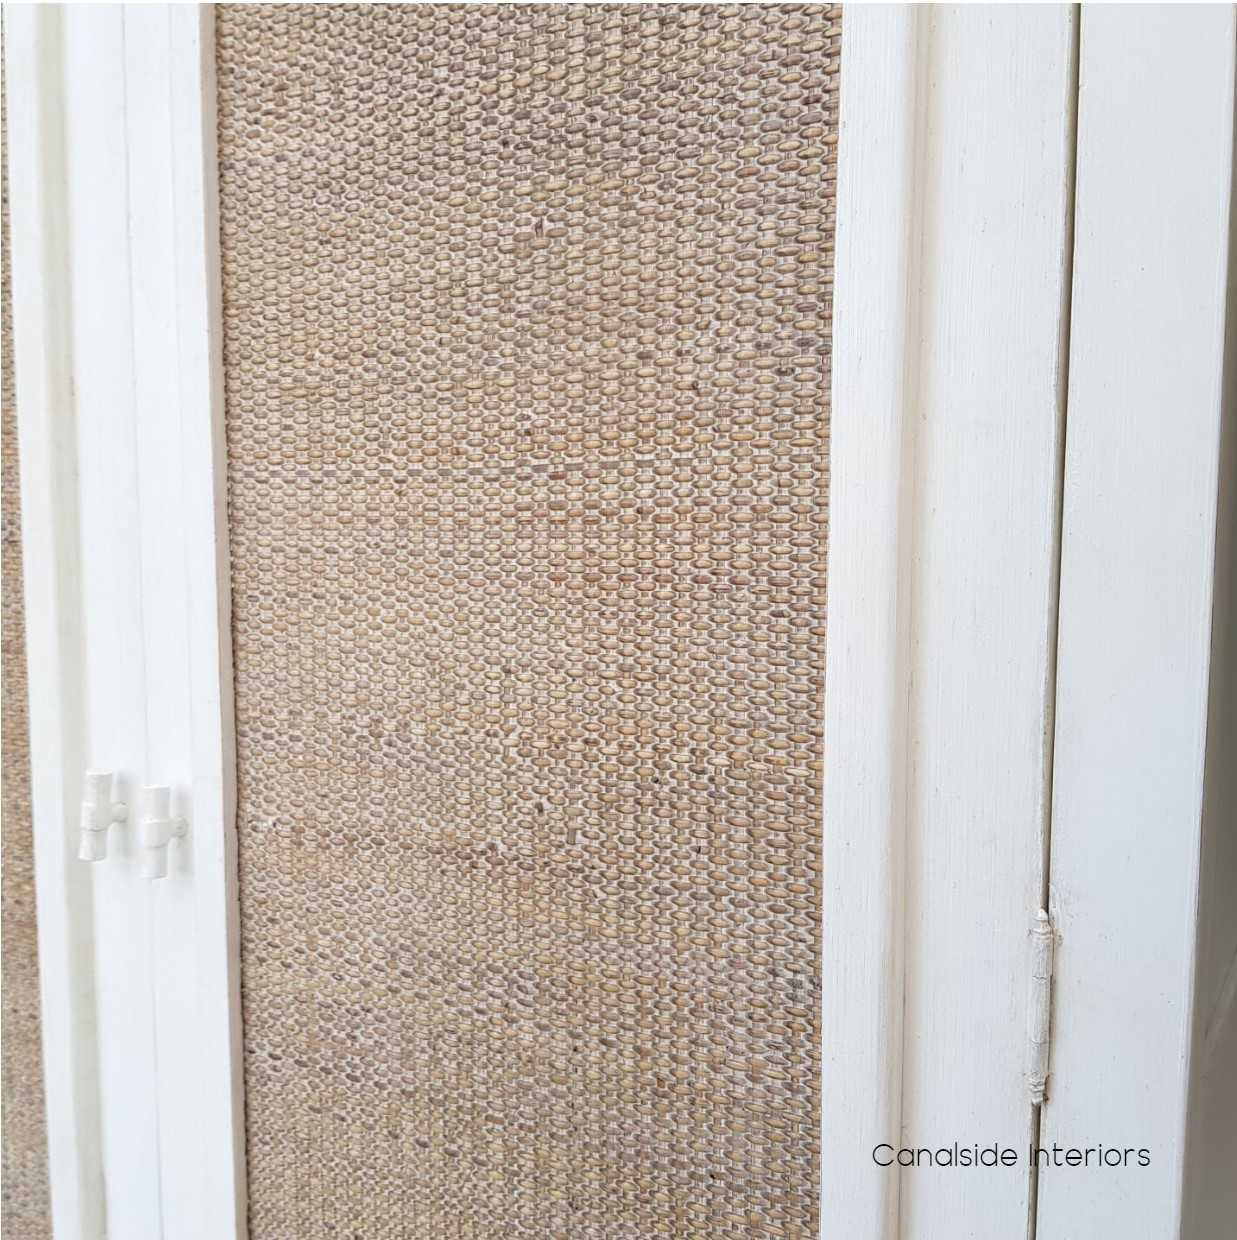 Tweed Hill Rattan Wardrobe Distressed White  BEDROOM, BEDROOM Wardrobes & Armoires, STORAGE, STORAGE Bookshelves & Cupboards, PLANTATION STYLE